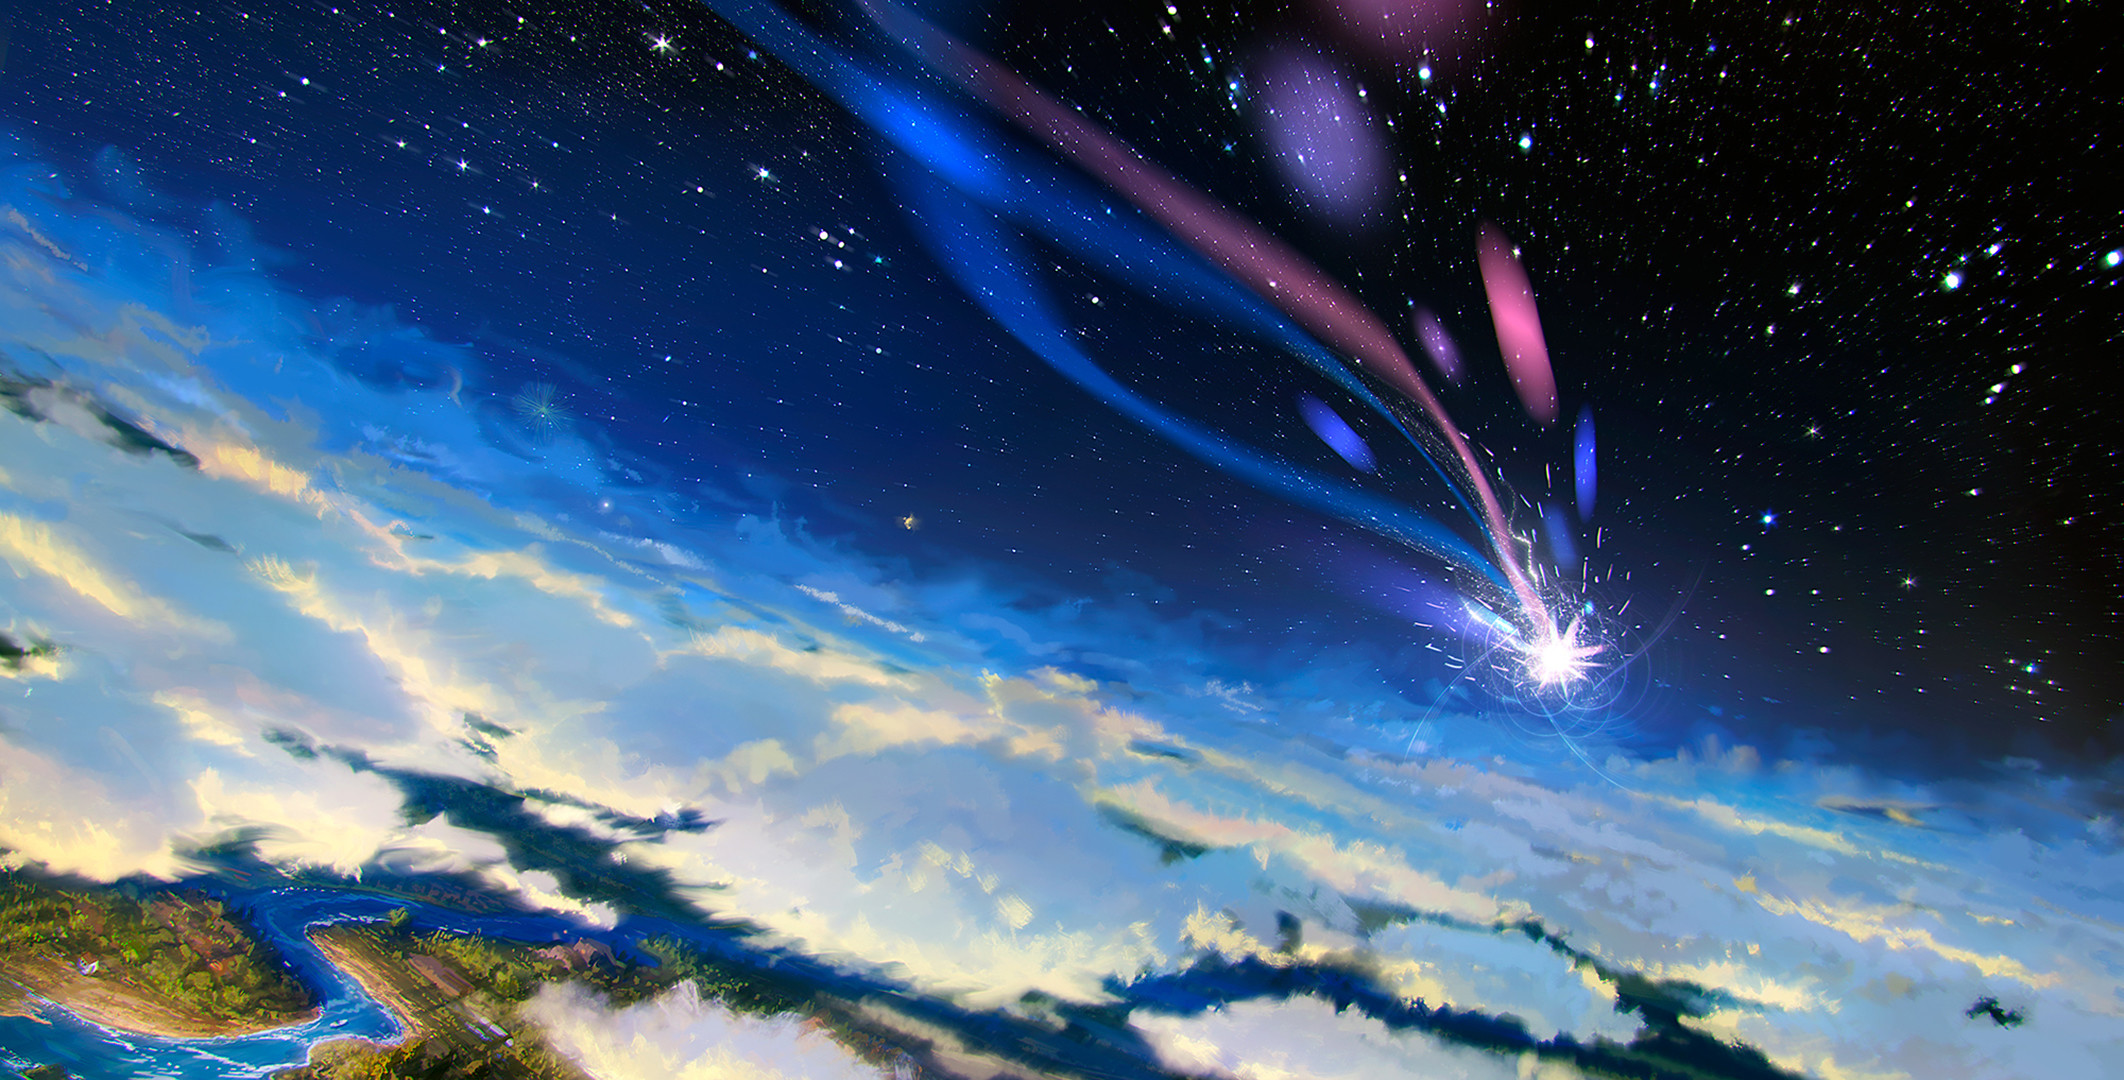 2124x1080 Movie - Howl's Moving Castle Sky Stars Cloud Landscape Shooting Star  Wallpaper